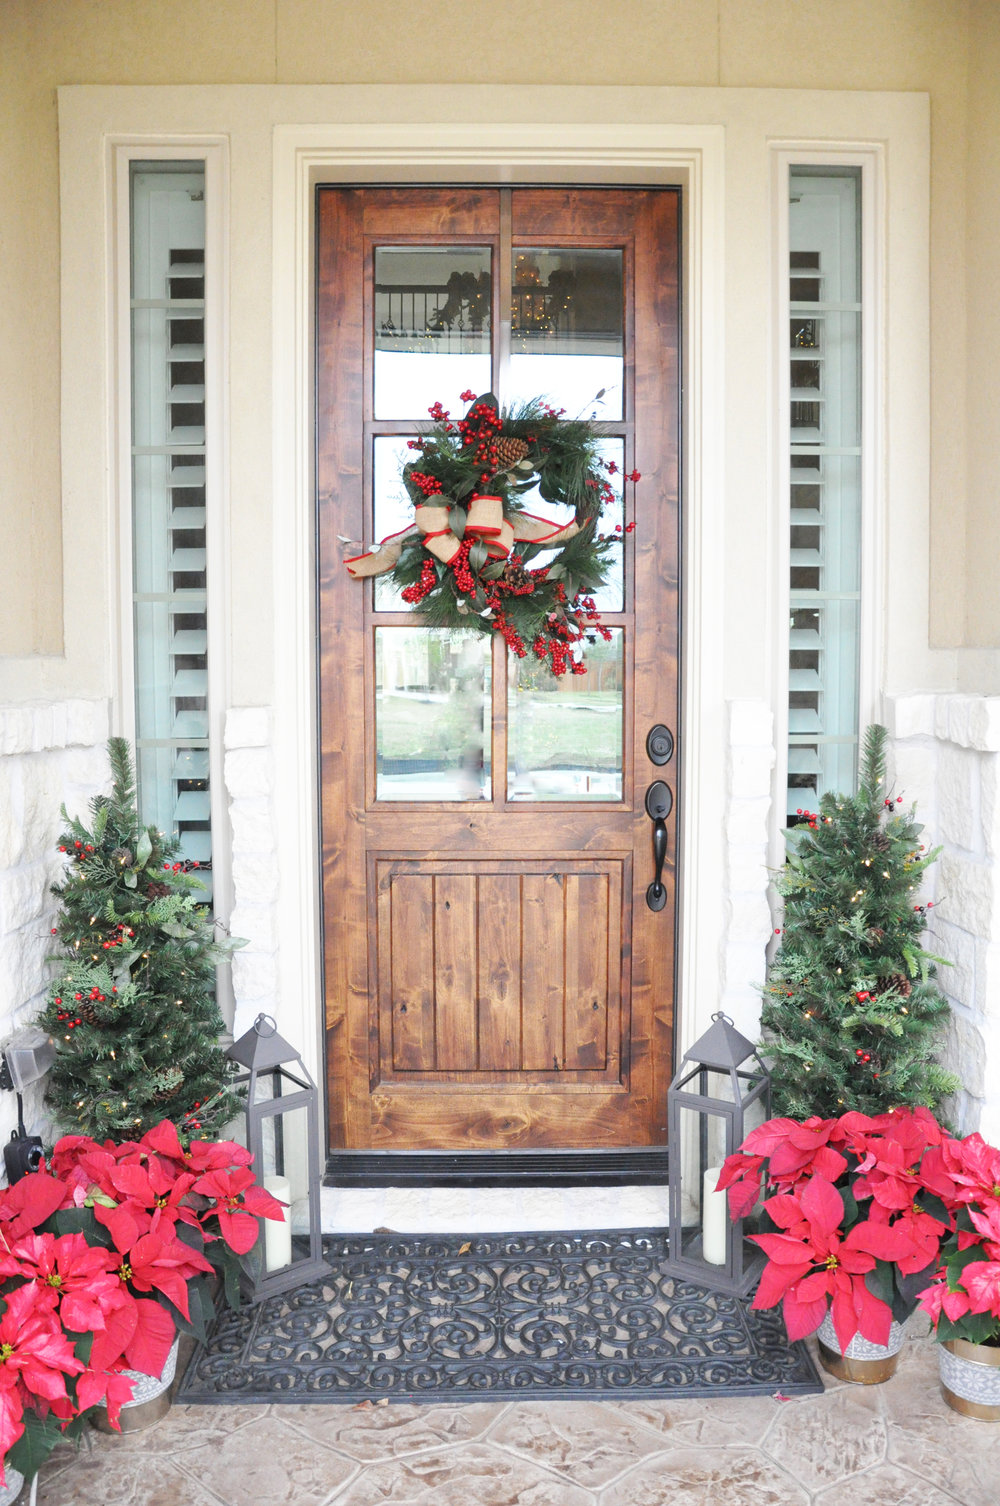 ... Red Berries On My Wreath And Little Christmas Trees. I Also Added Some  Wreaths With Red Bows To The Light Fixtures Flanking The Entrance To Our  Porch.